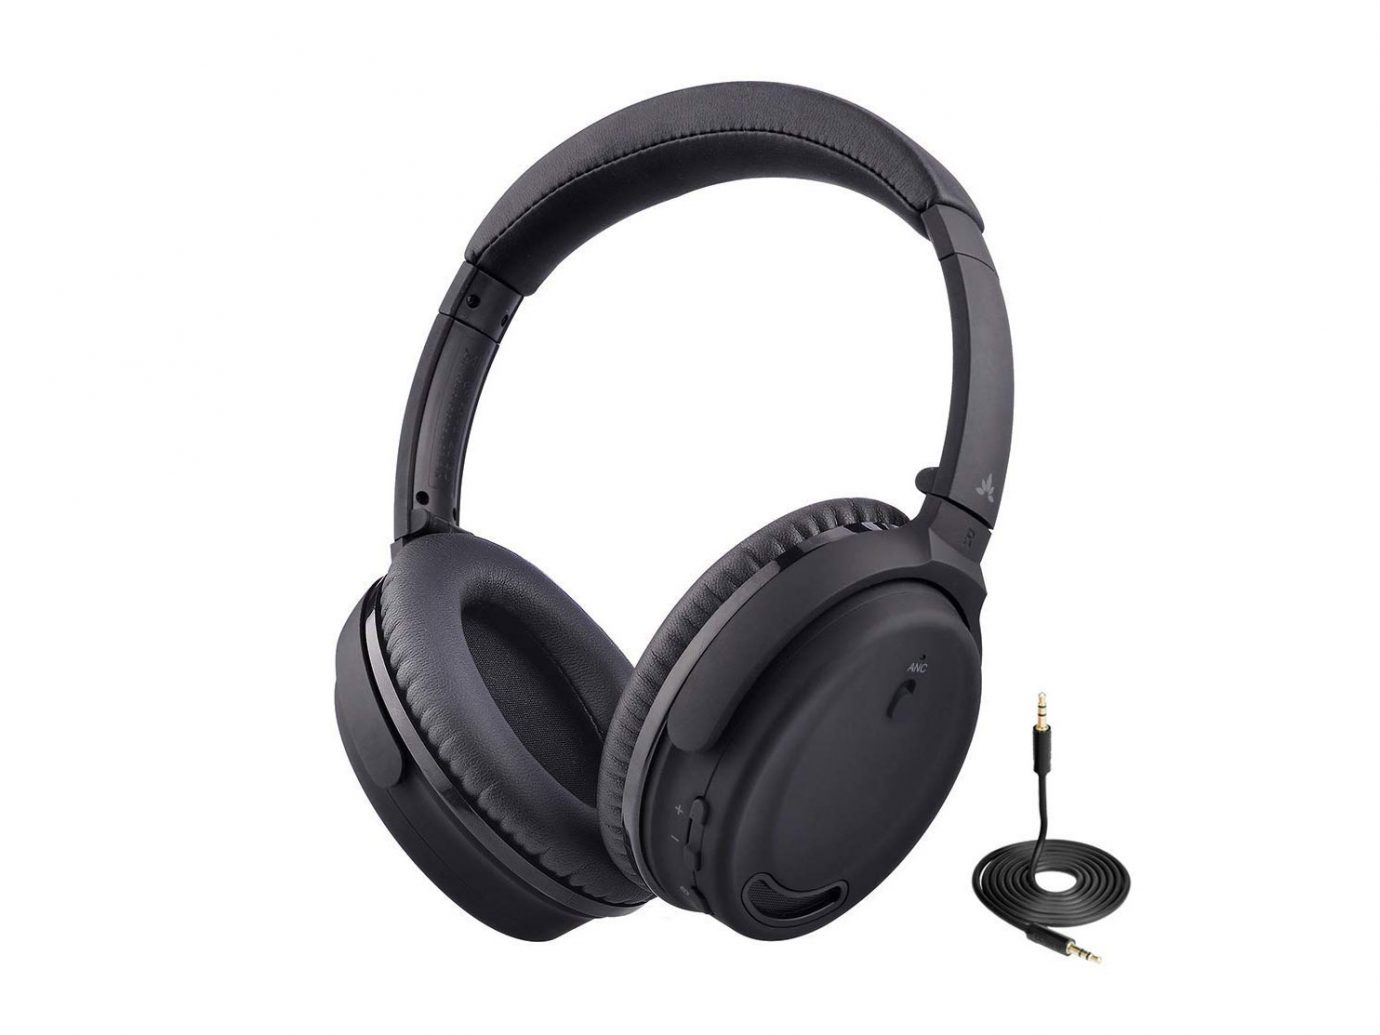 Avantree ANC032 Active Noise Canceling Bluetooth Headphones